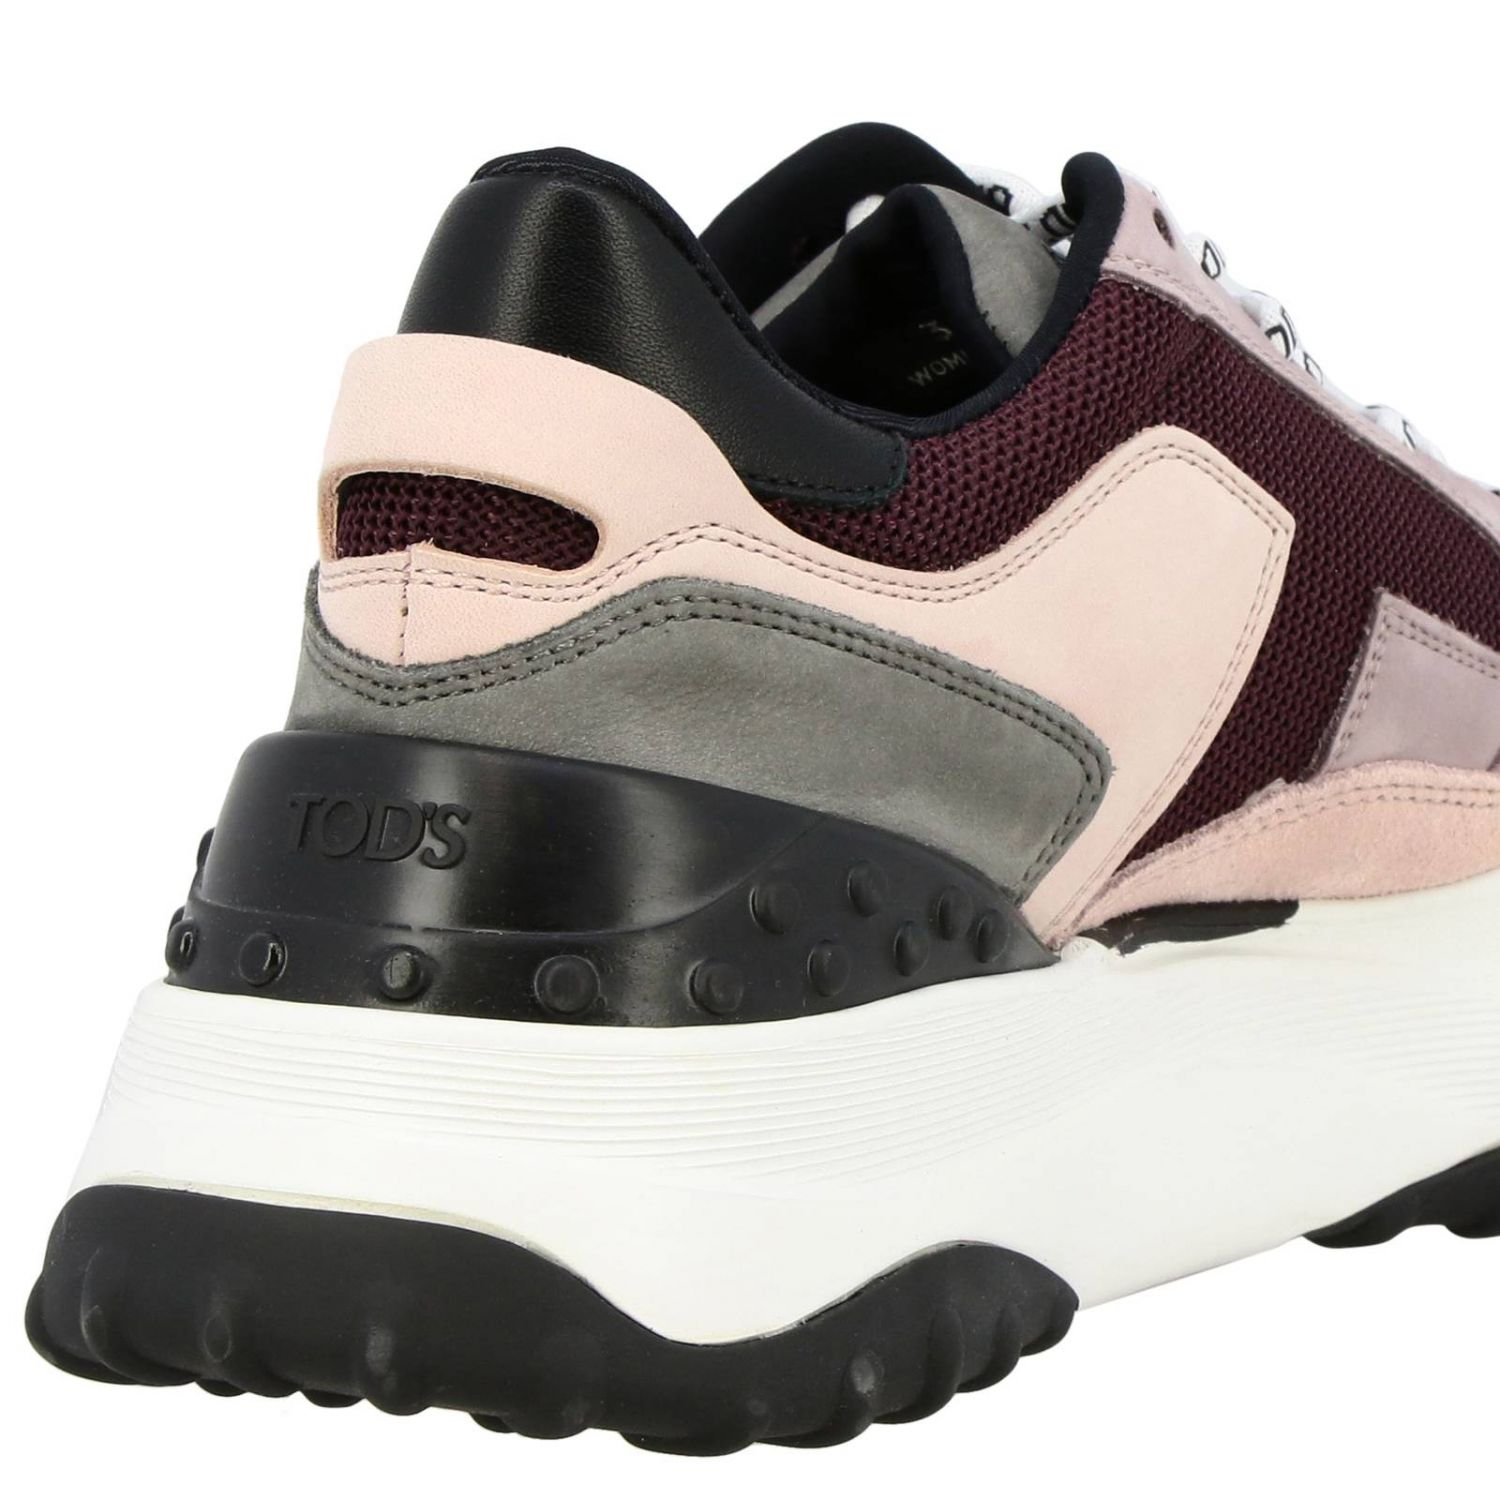 Tod's sneakers in suede leather and micro-net with gommini pink 4